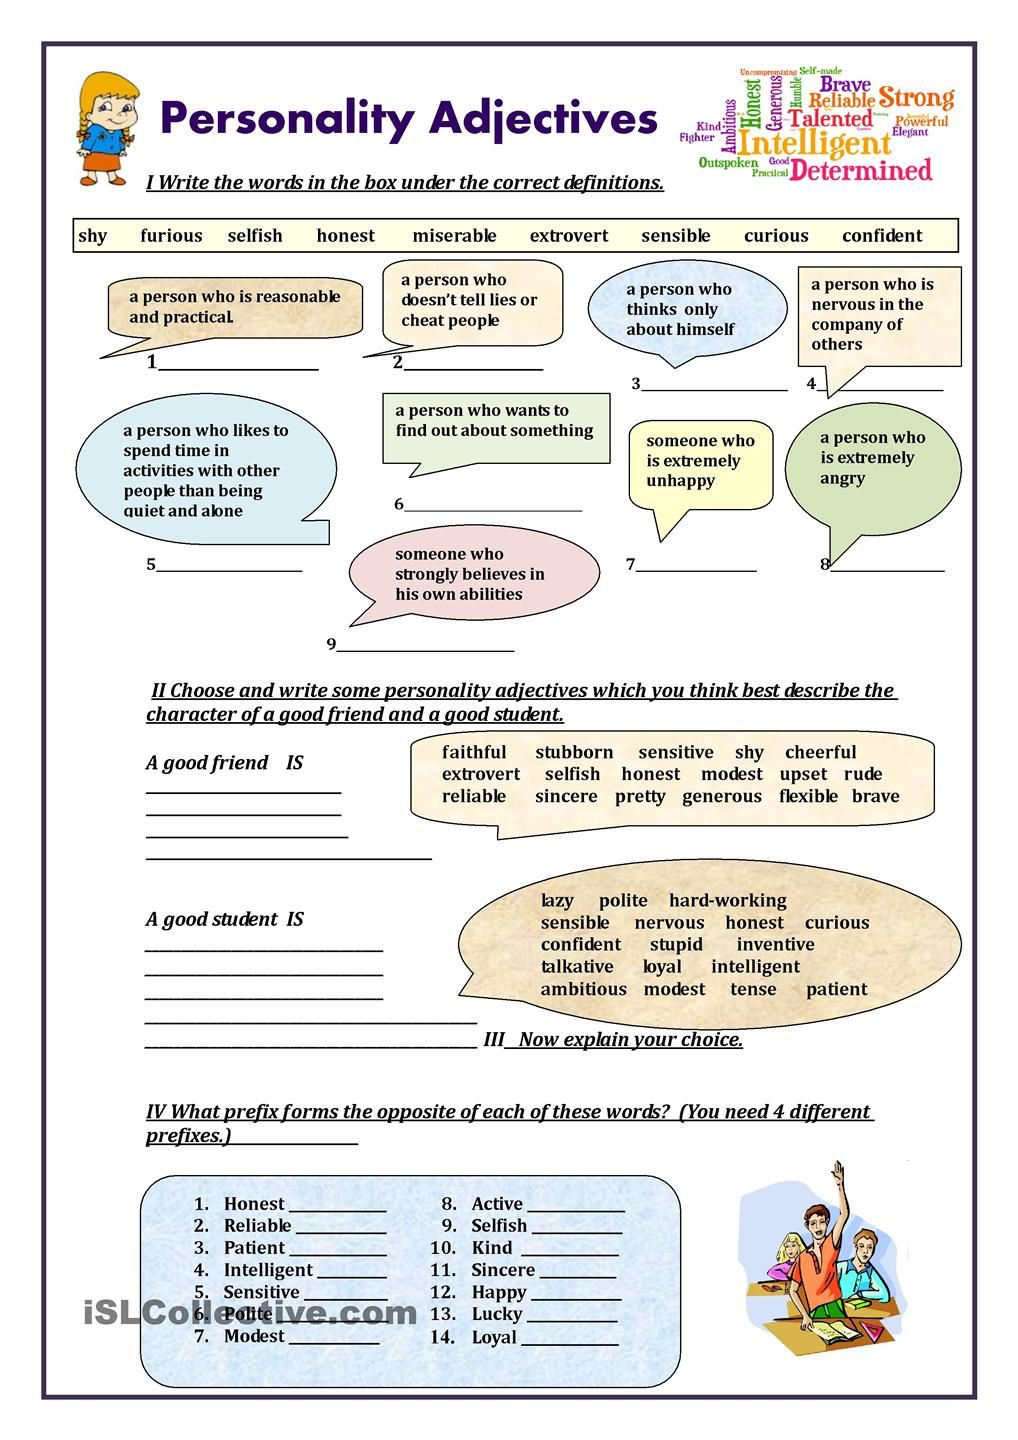 Personality Adjectives Worksheet Free Esl Printable Worksheets